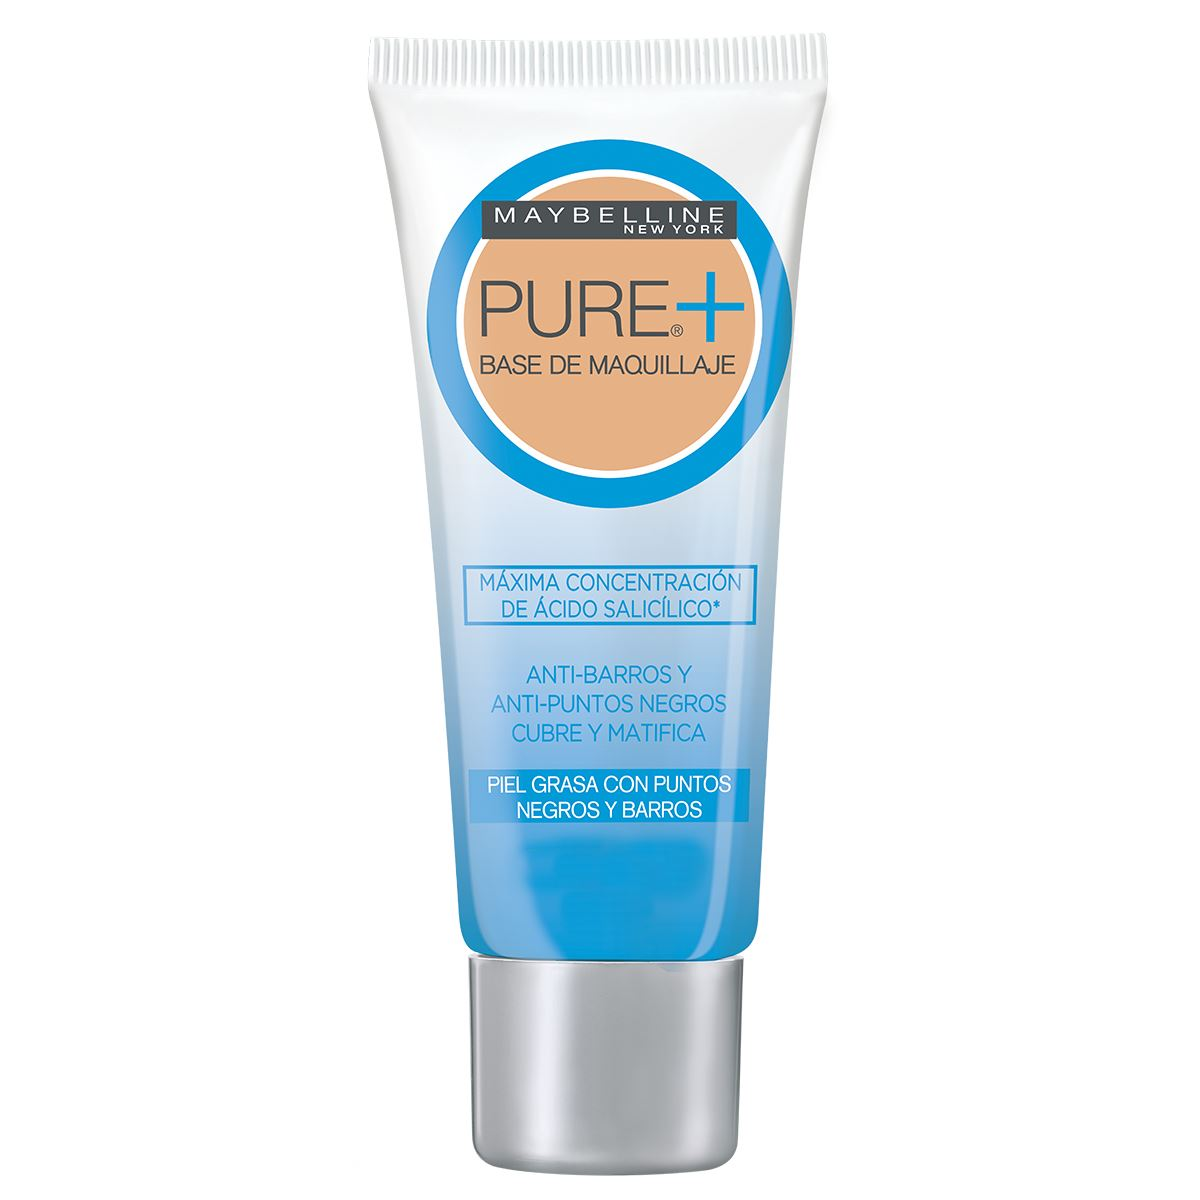 Base de Maquillaje Pure Plus Maybelline 20 Beige Claro